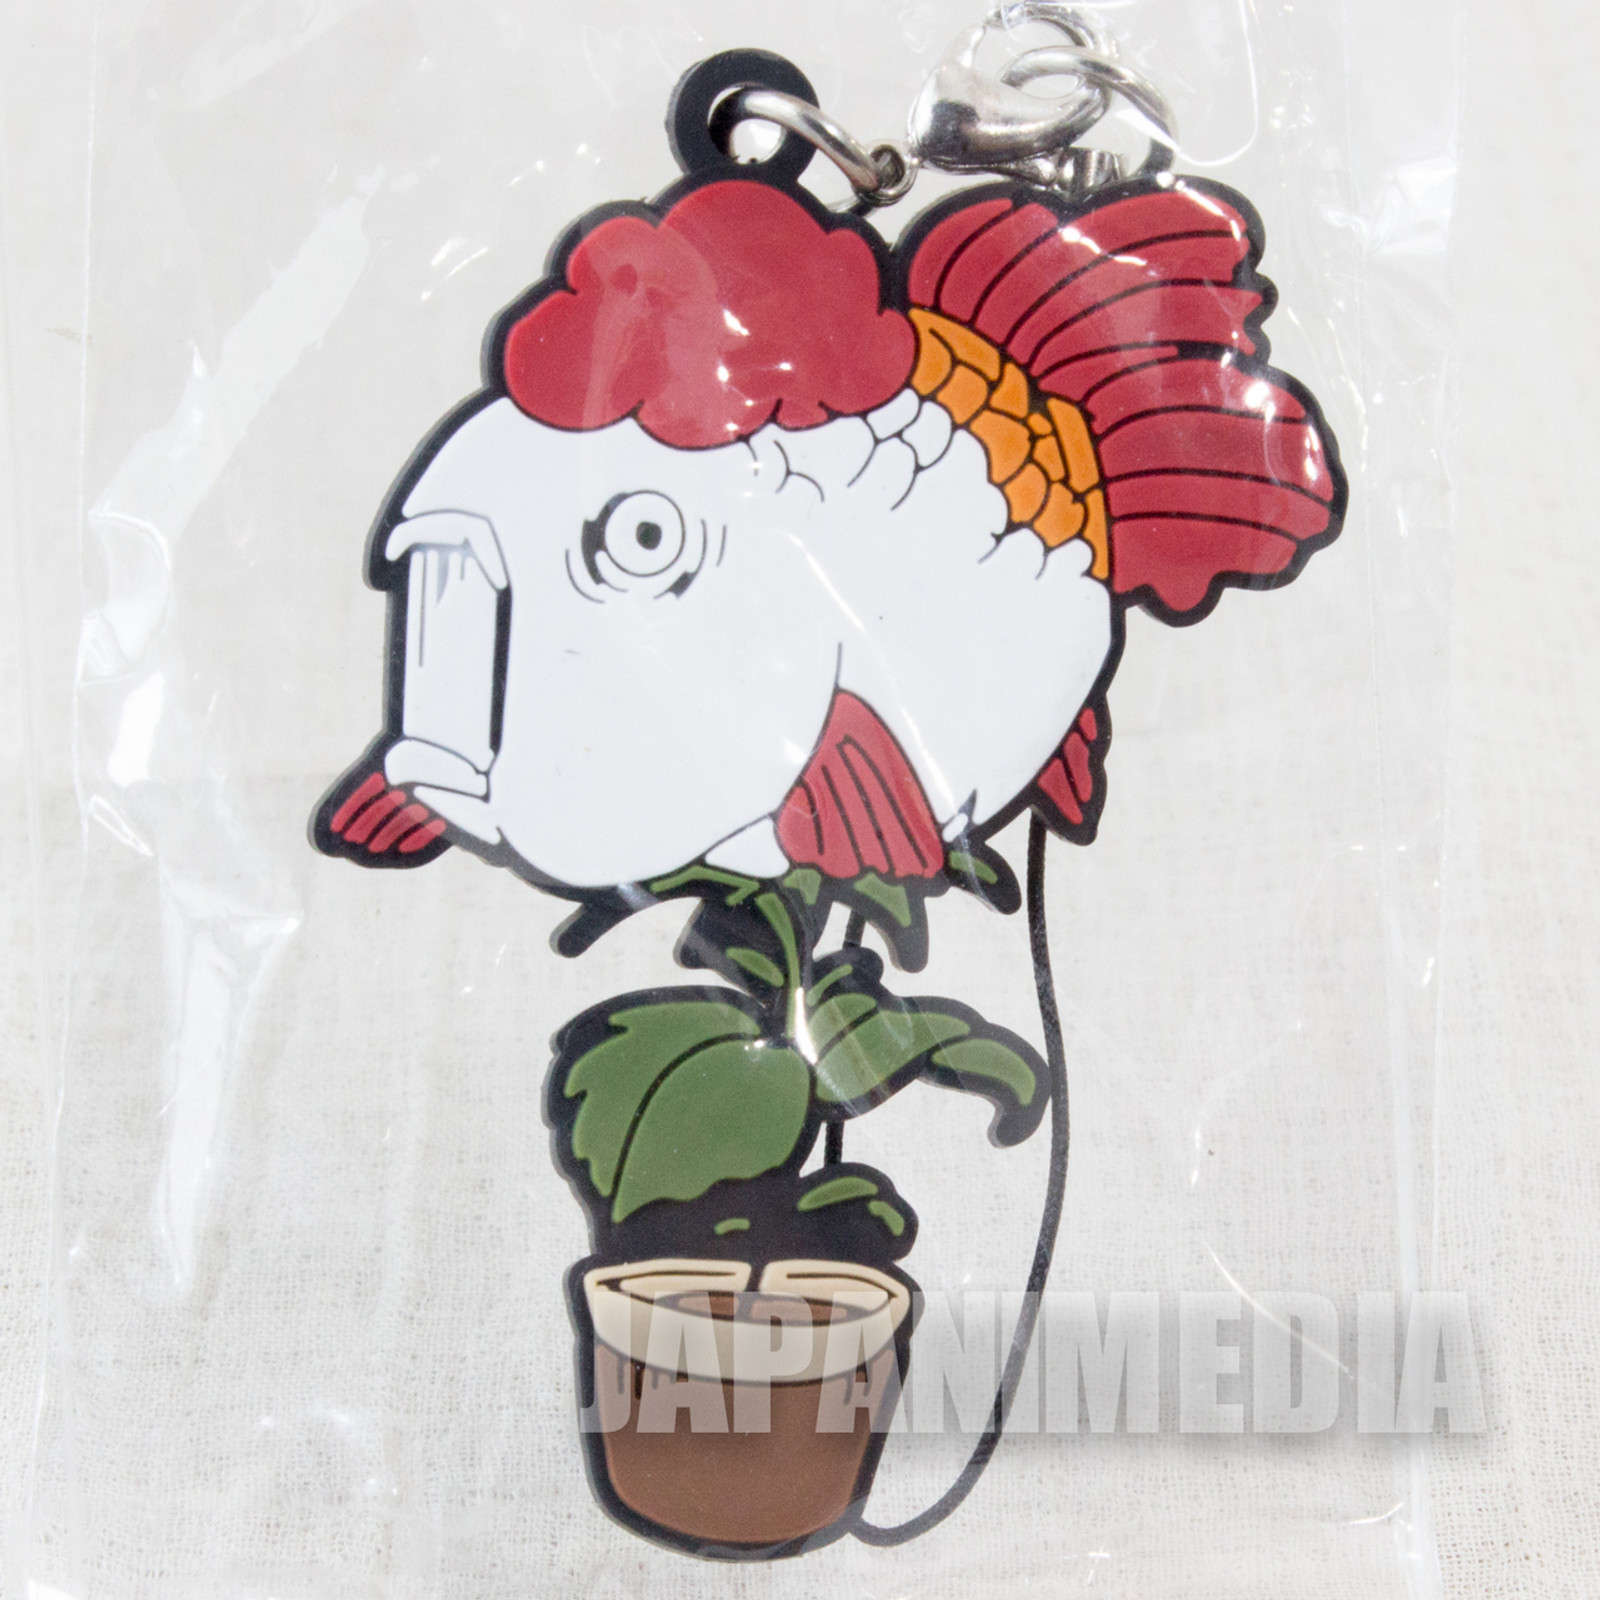 Hozuki no Reitetsu Goldfish Plant (Kingyosou) Rubber Mascot Strap Collection JAPAN ANIME MANGA